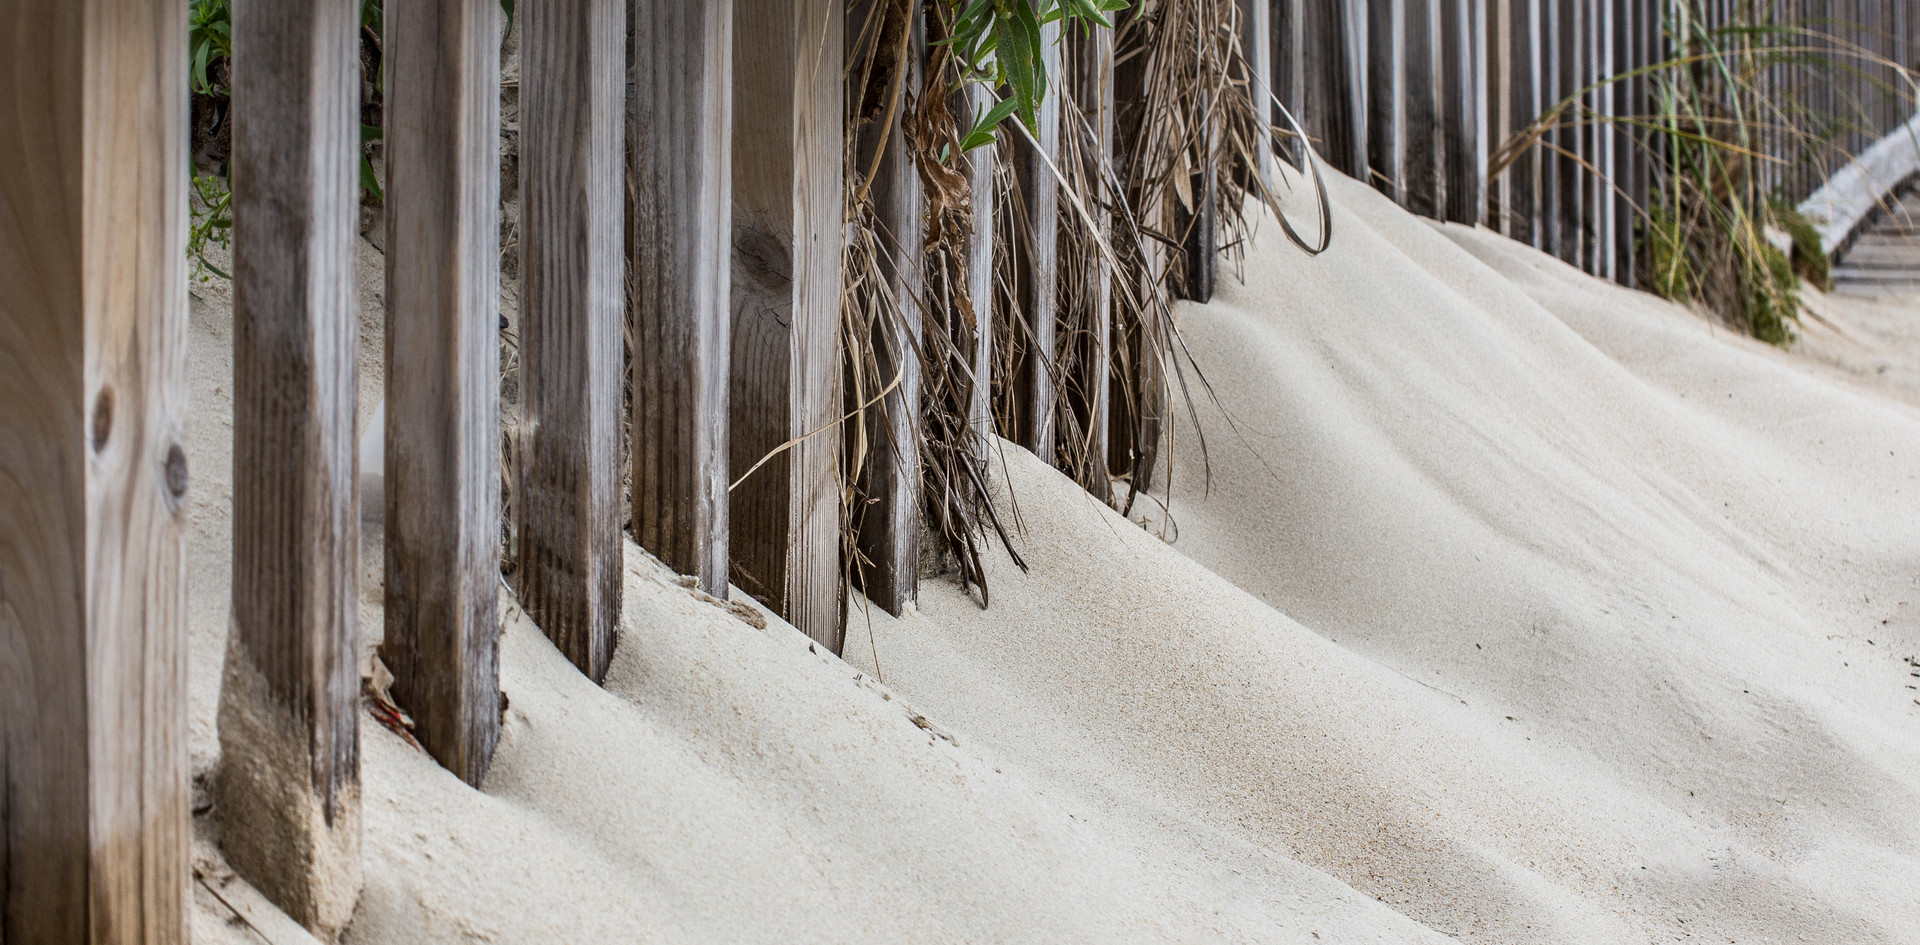 The movement of Sand-1.jpg